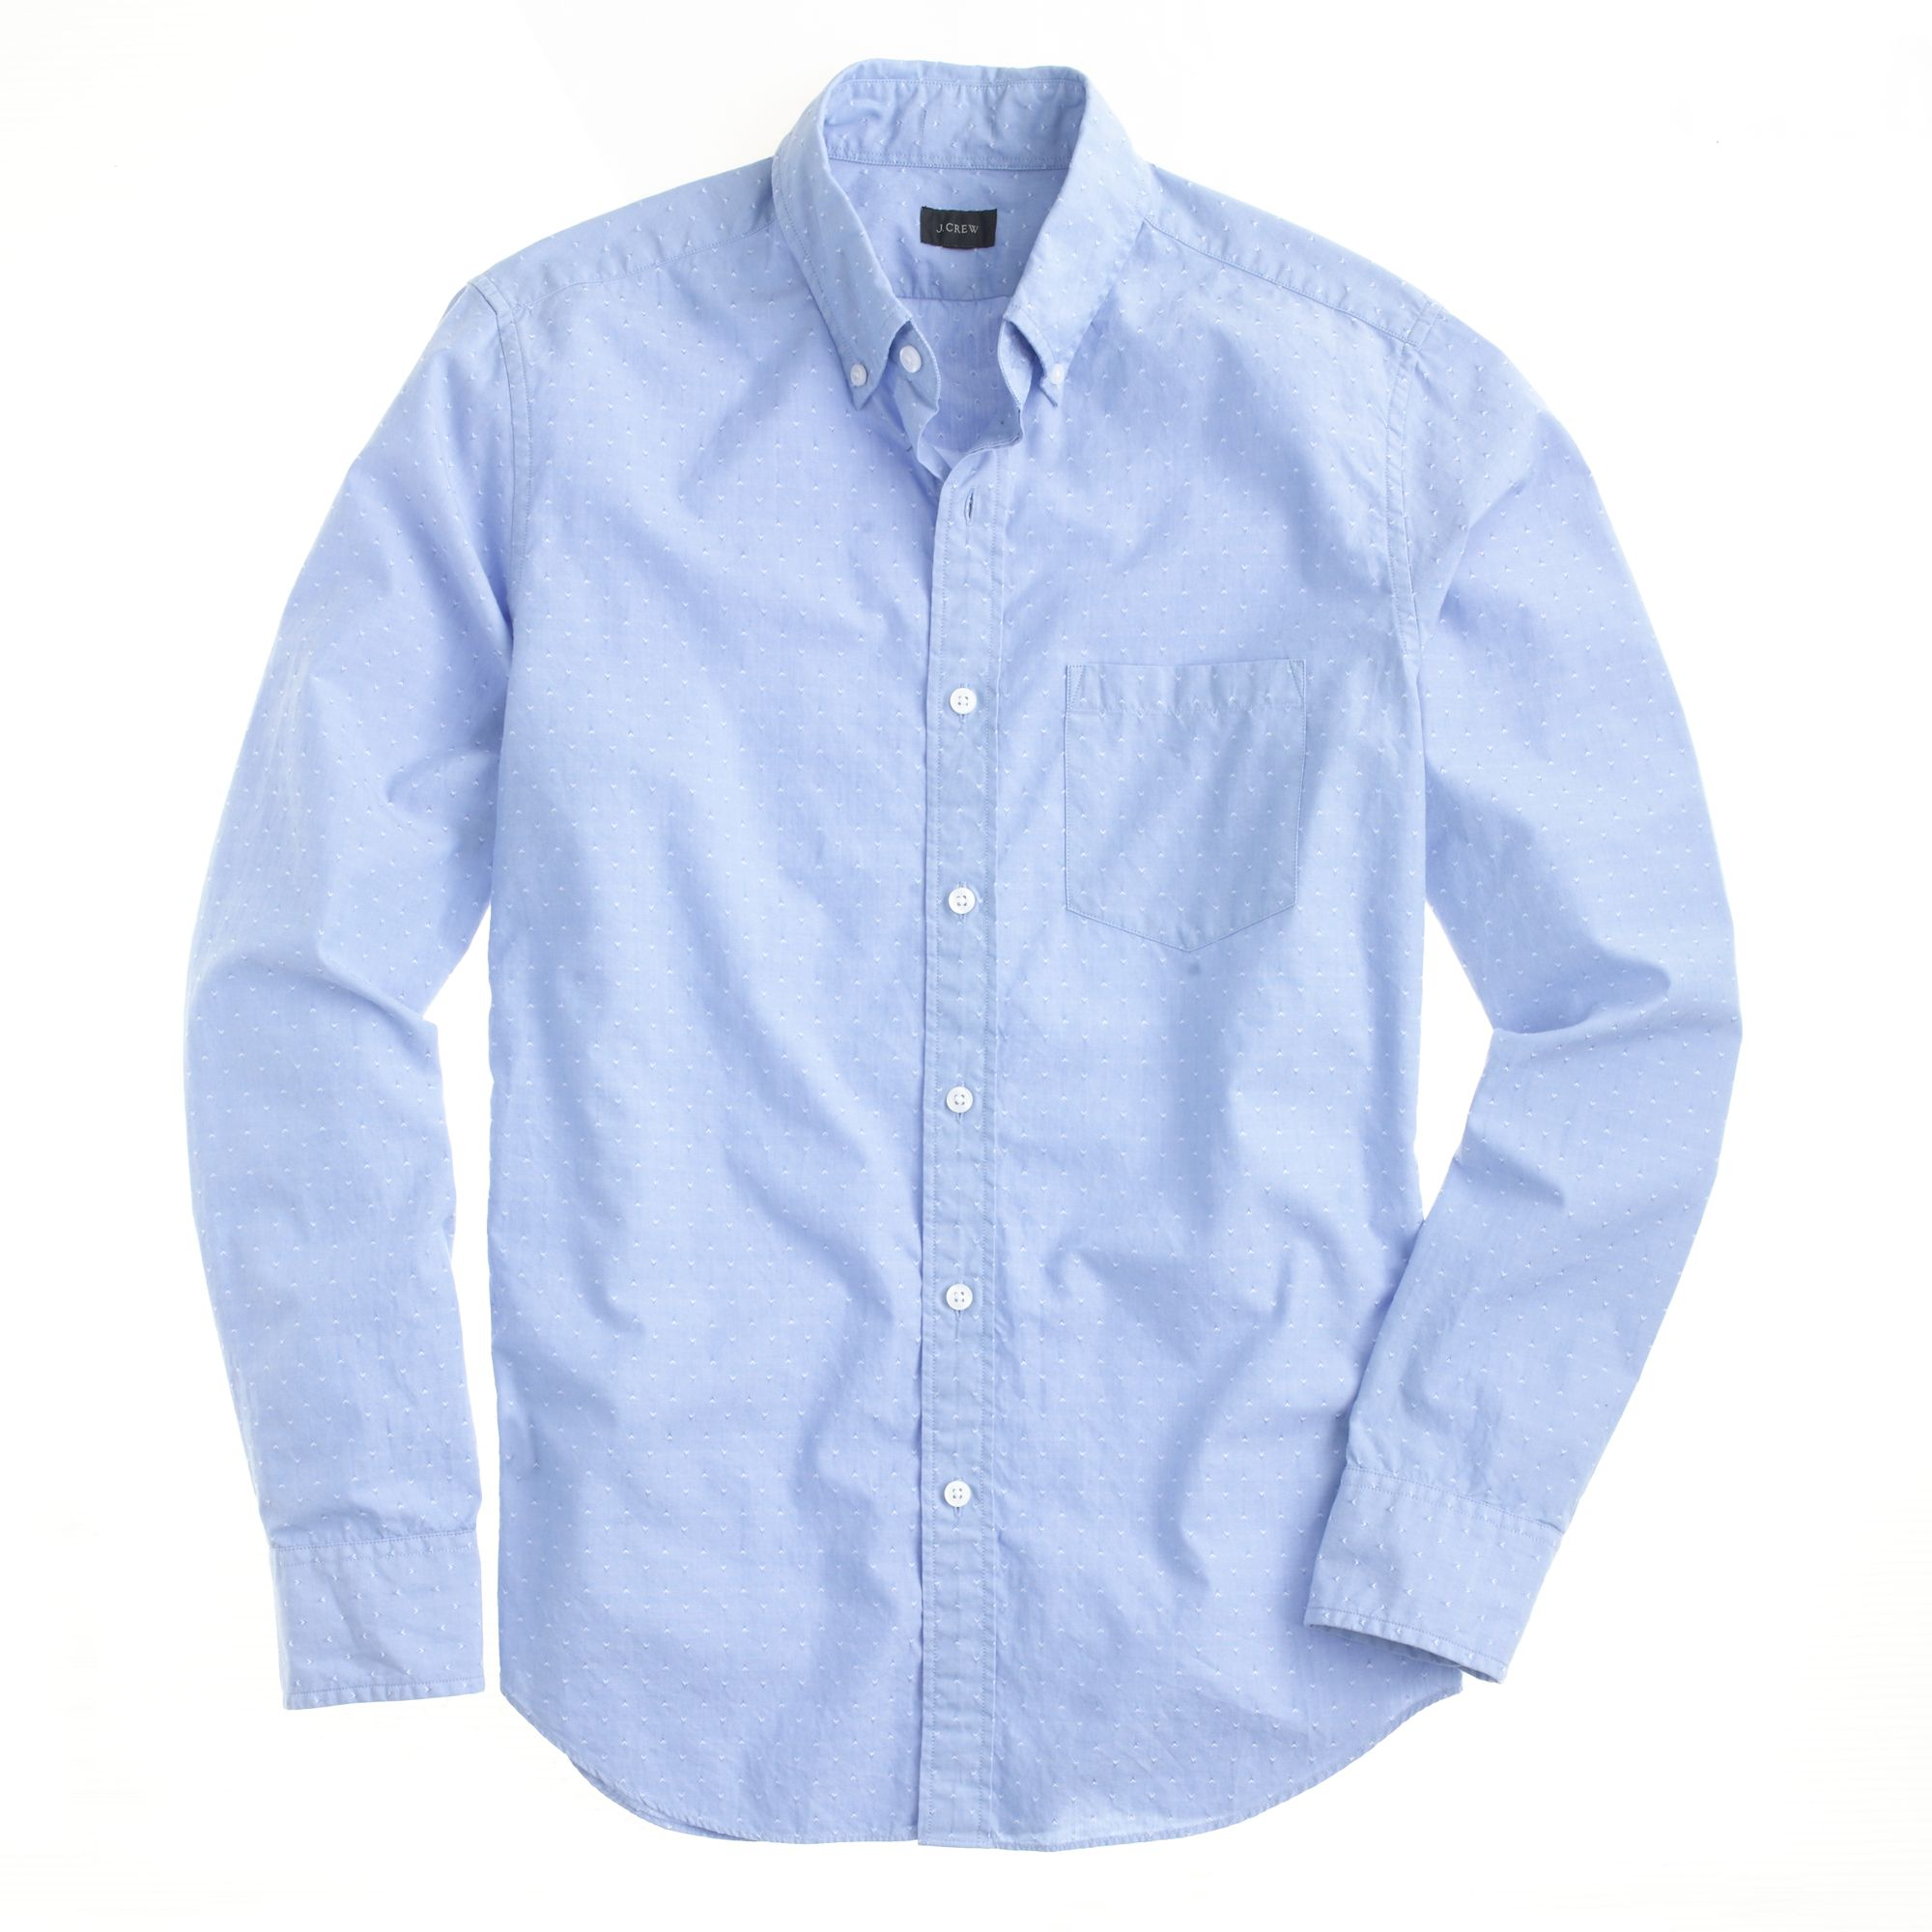 J.crew Slim Cotton Shirt in Woven Arrows in Blue for Men | Lyst